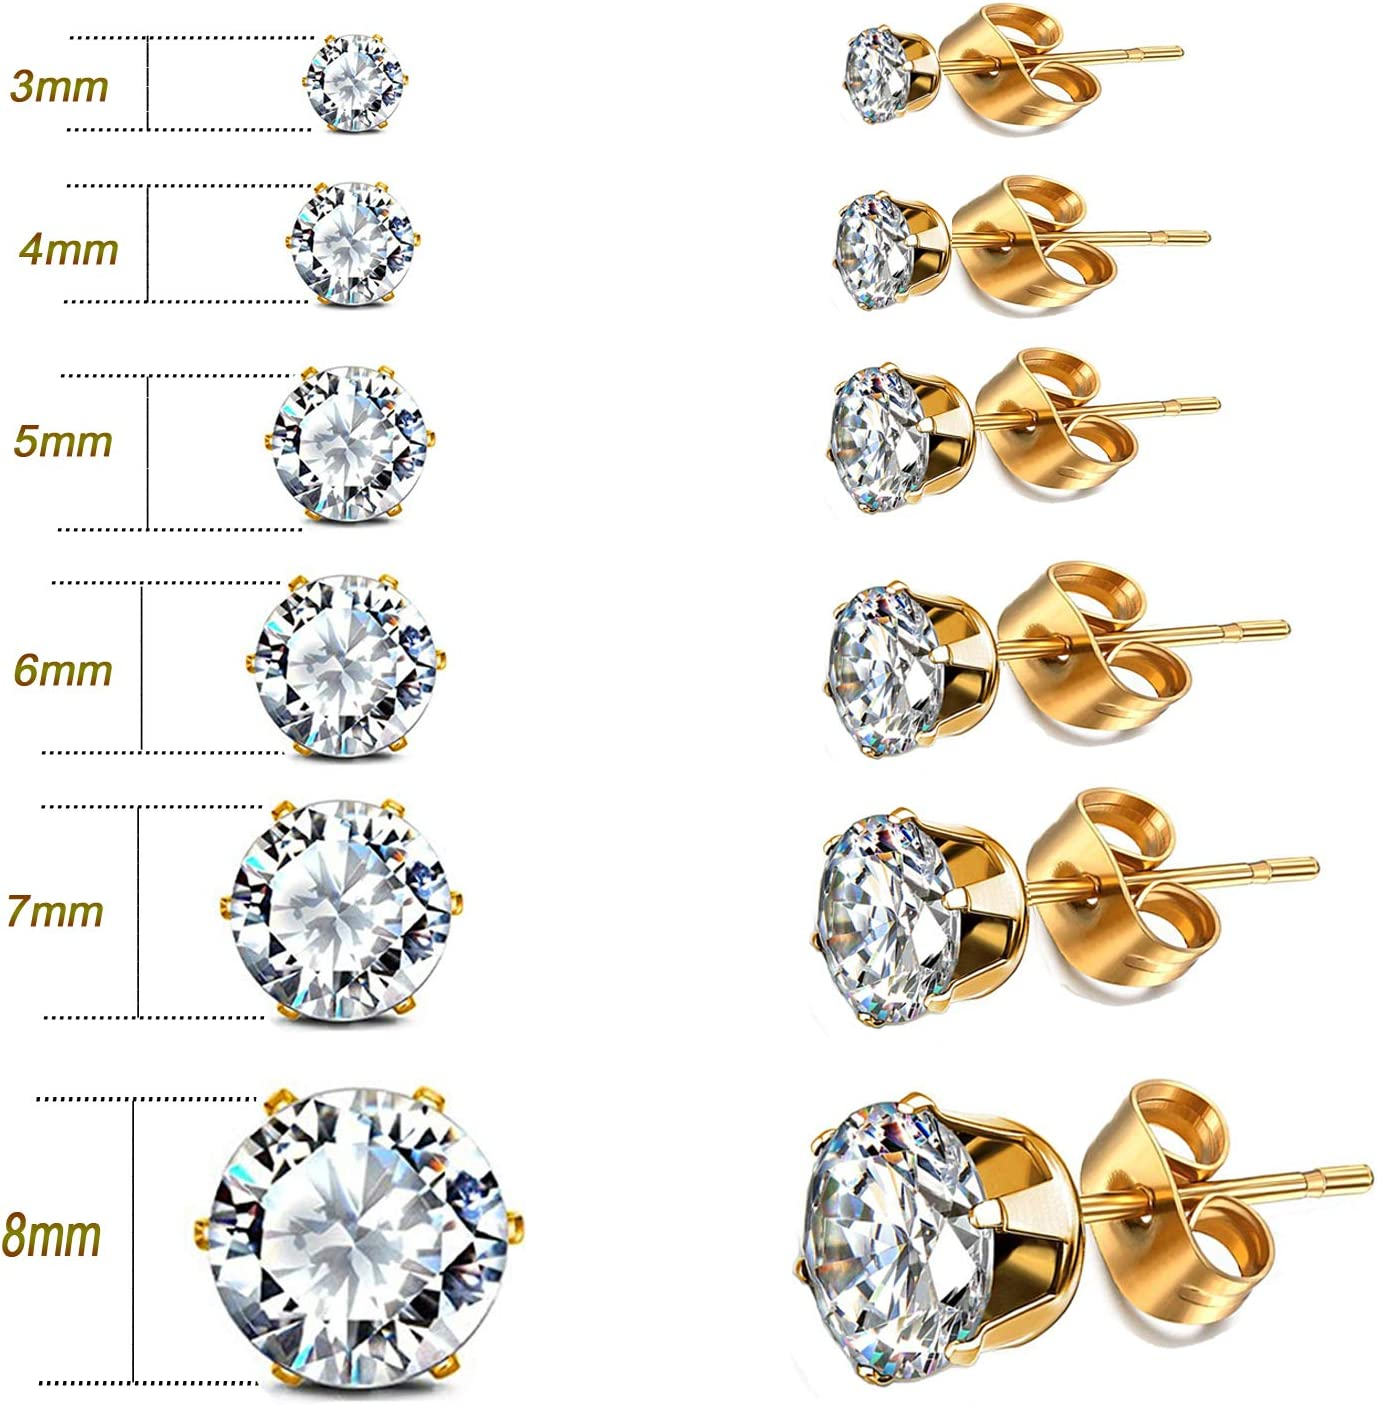 Studs Earrings 7MM Gold Stainless Steel